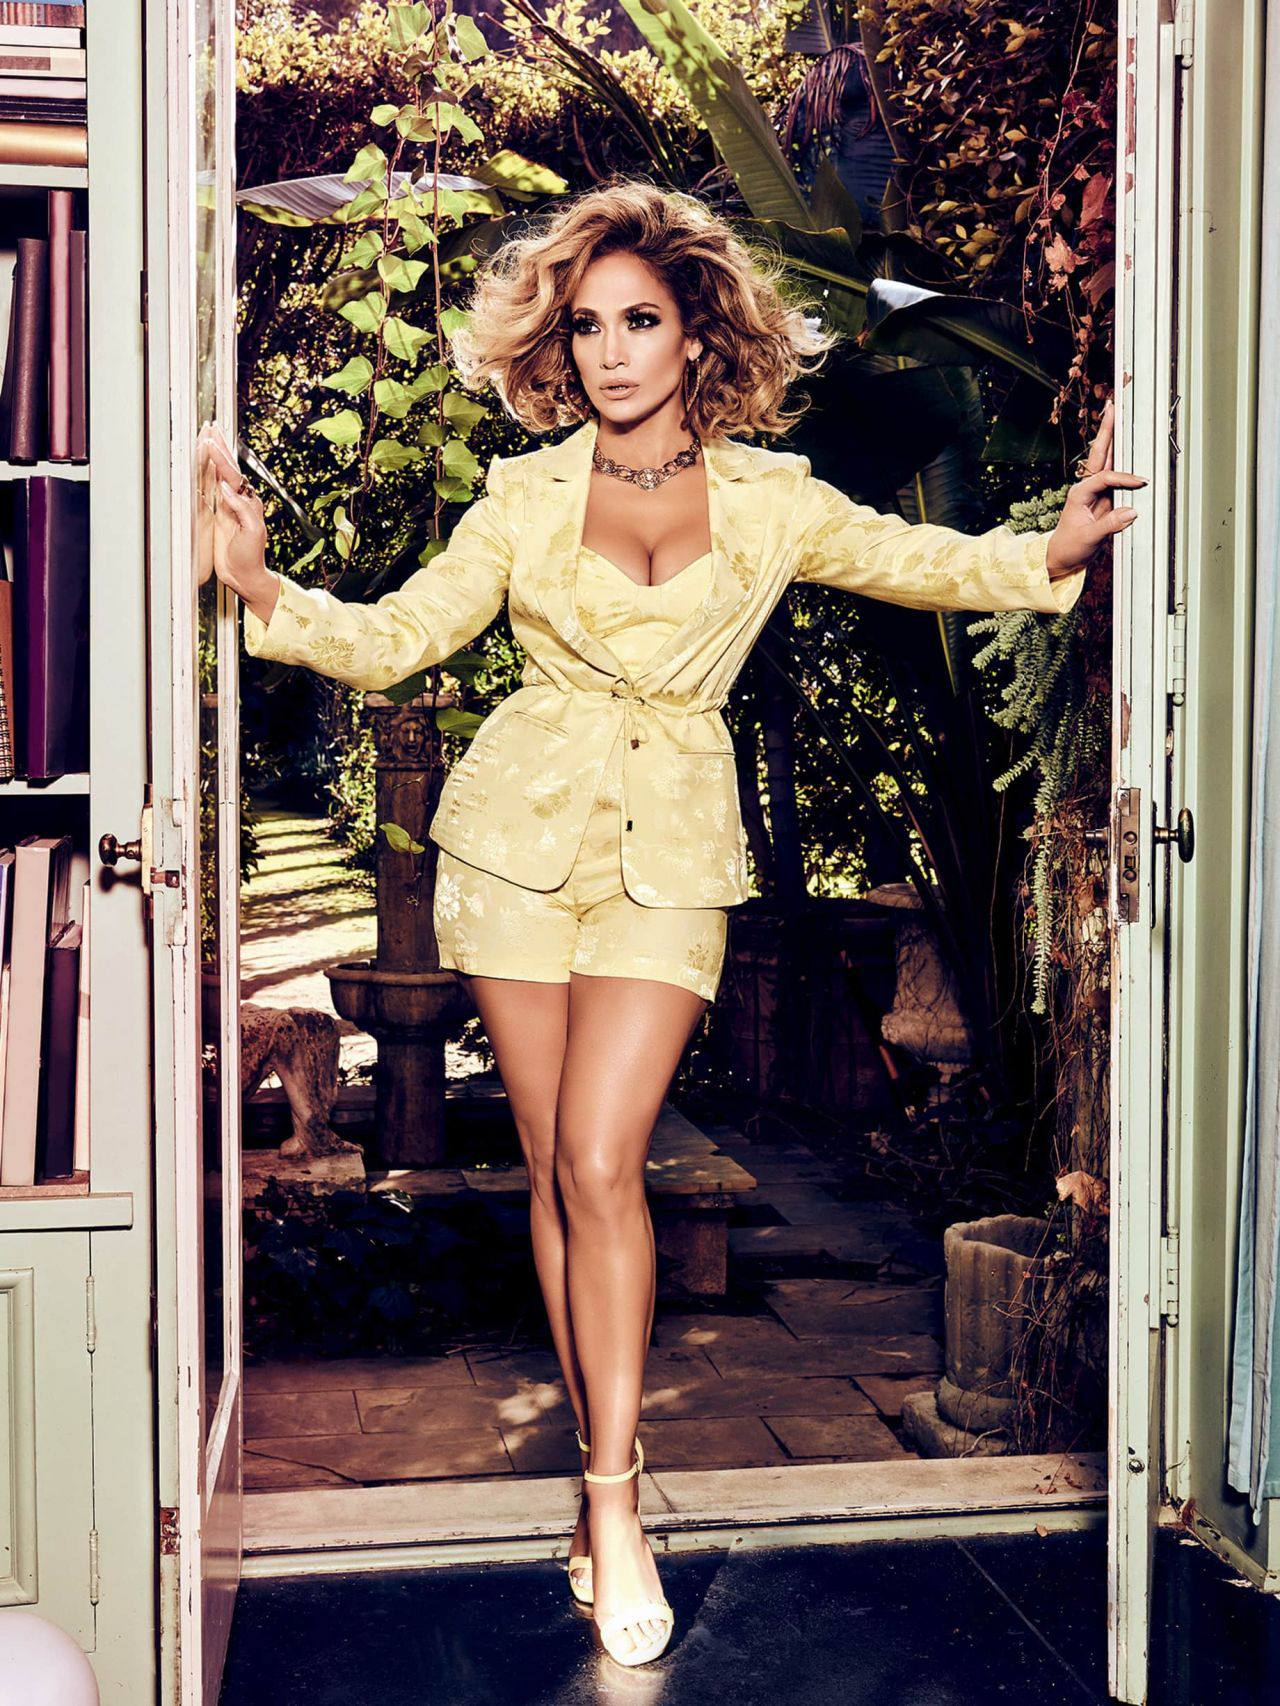 Jennifer Lopez – Sexy Boobs And Legs In Beautiful Photoshoot For Guess Spring Summer 2020 Campaign 0005